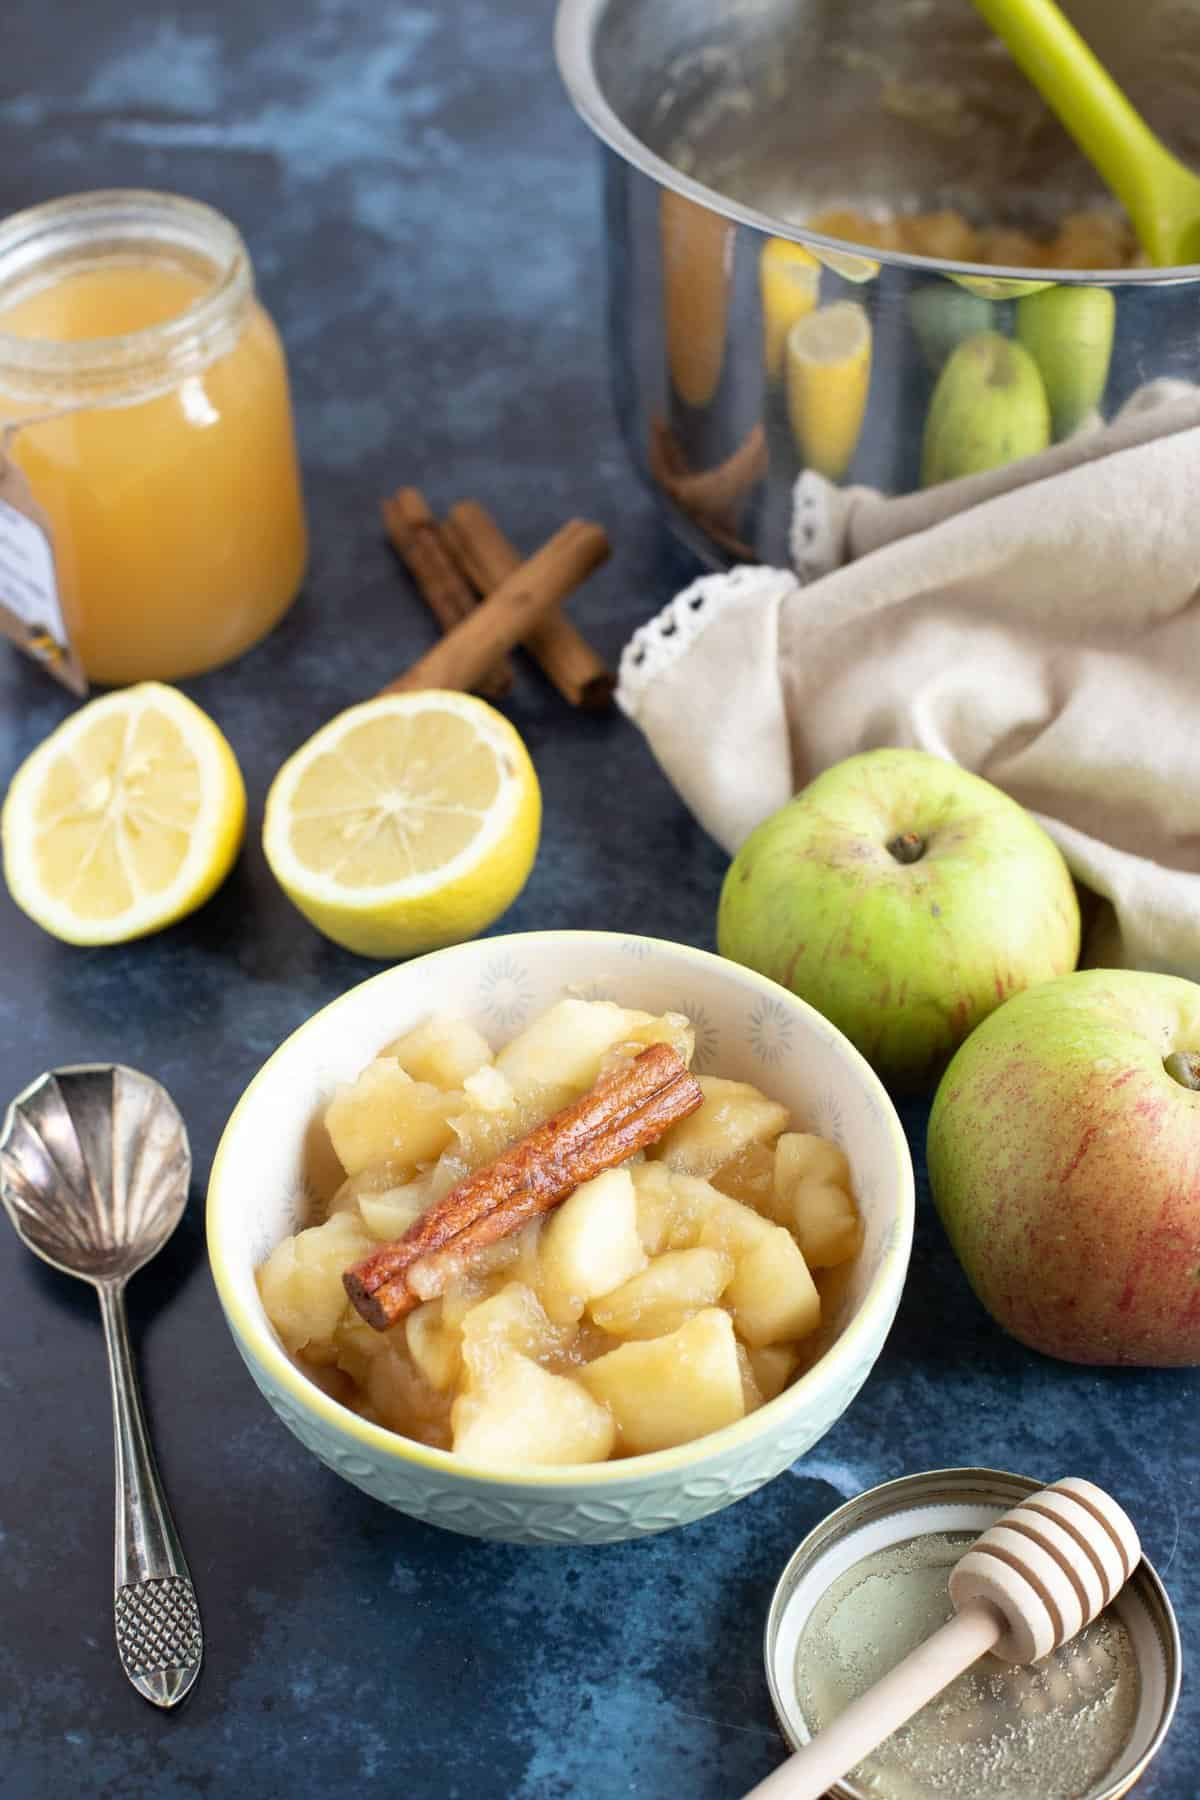 Stewed apples in a bowl with a pan of stewed apples behind.